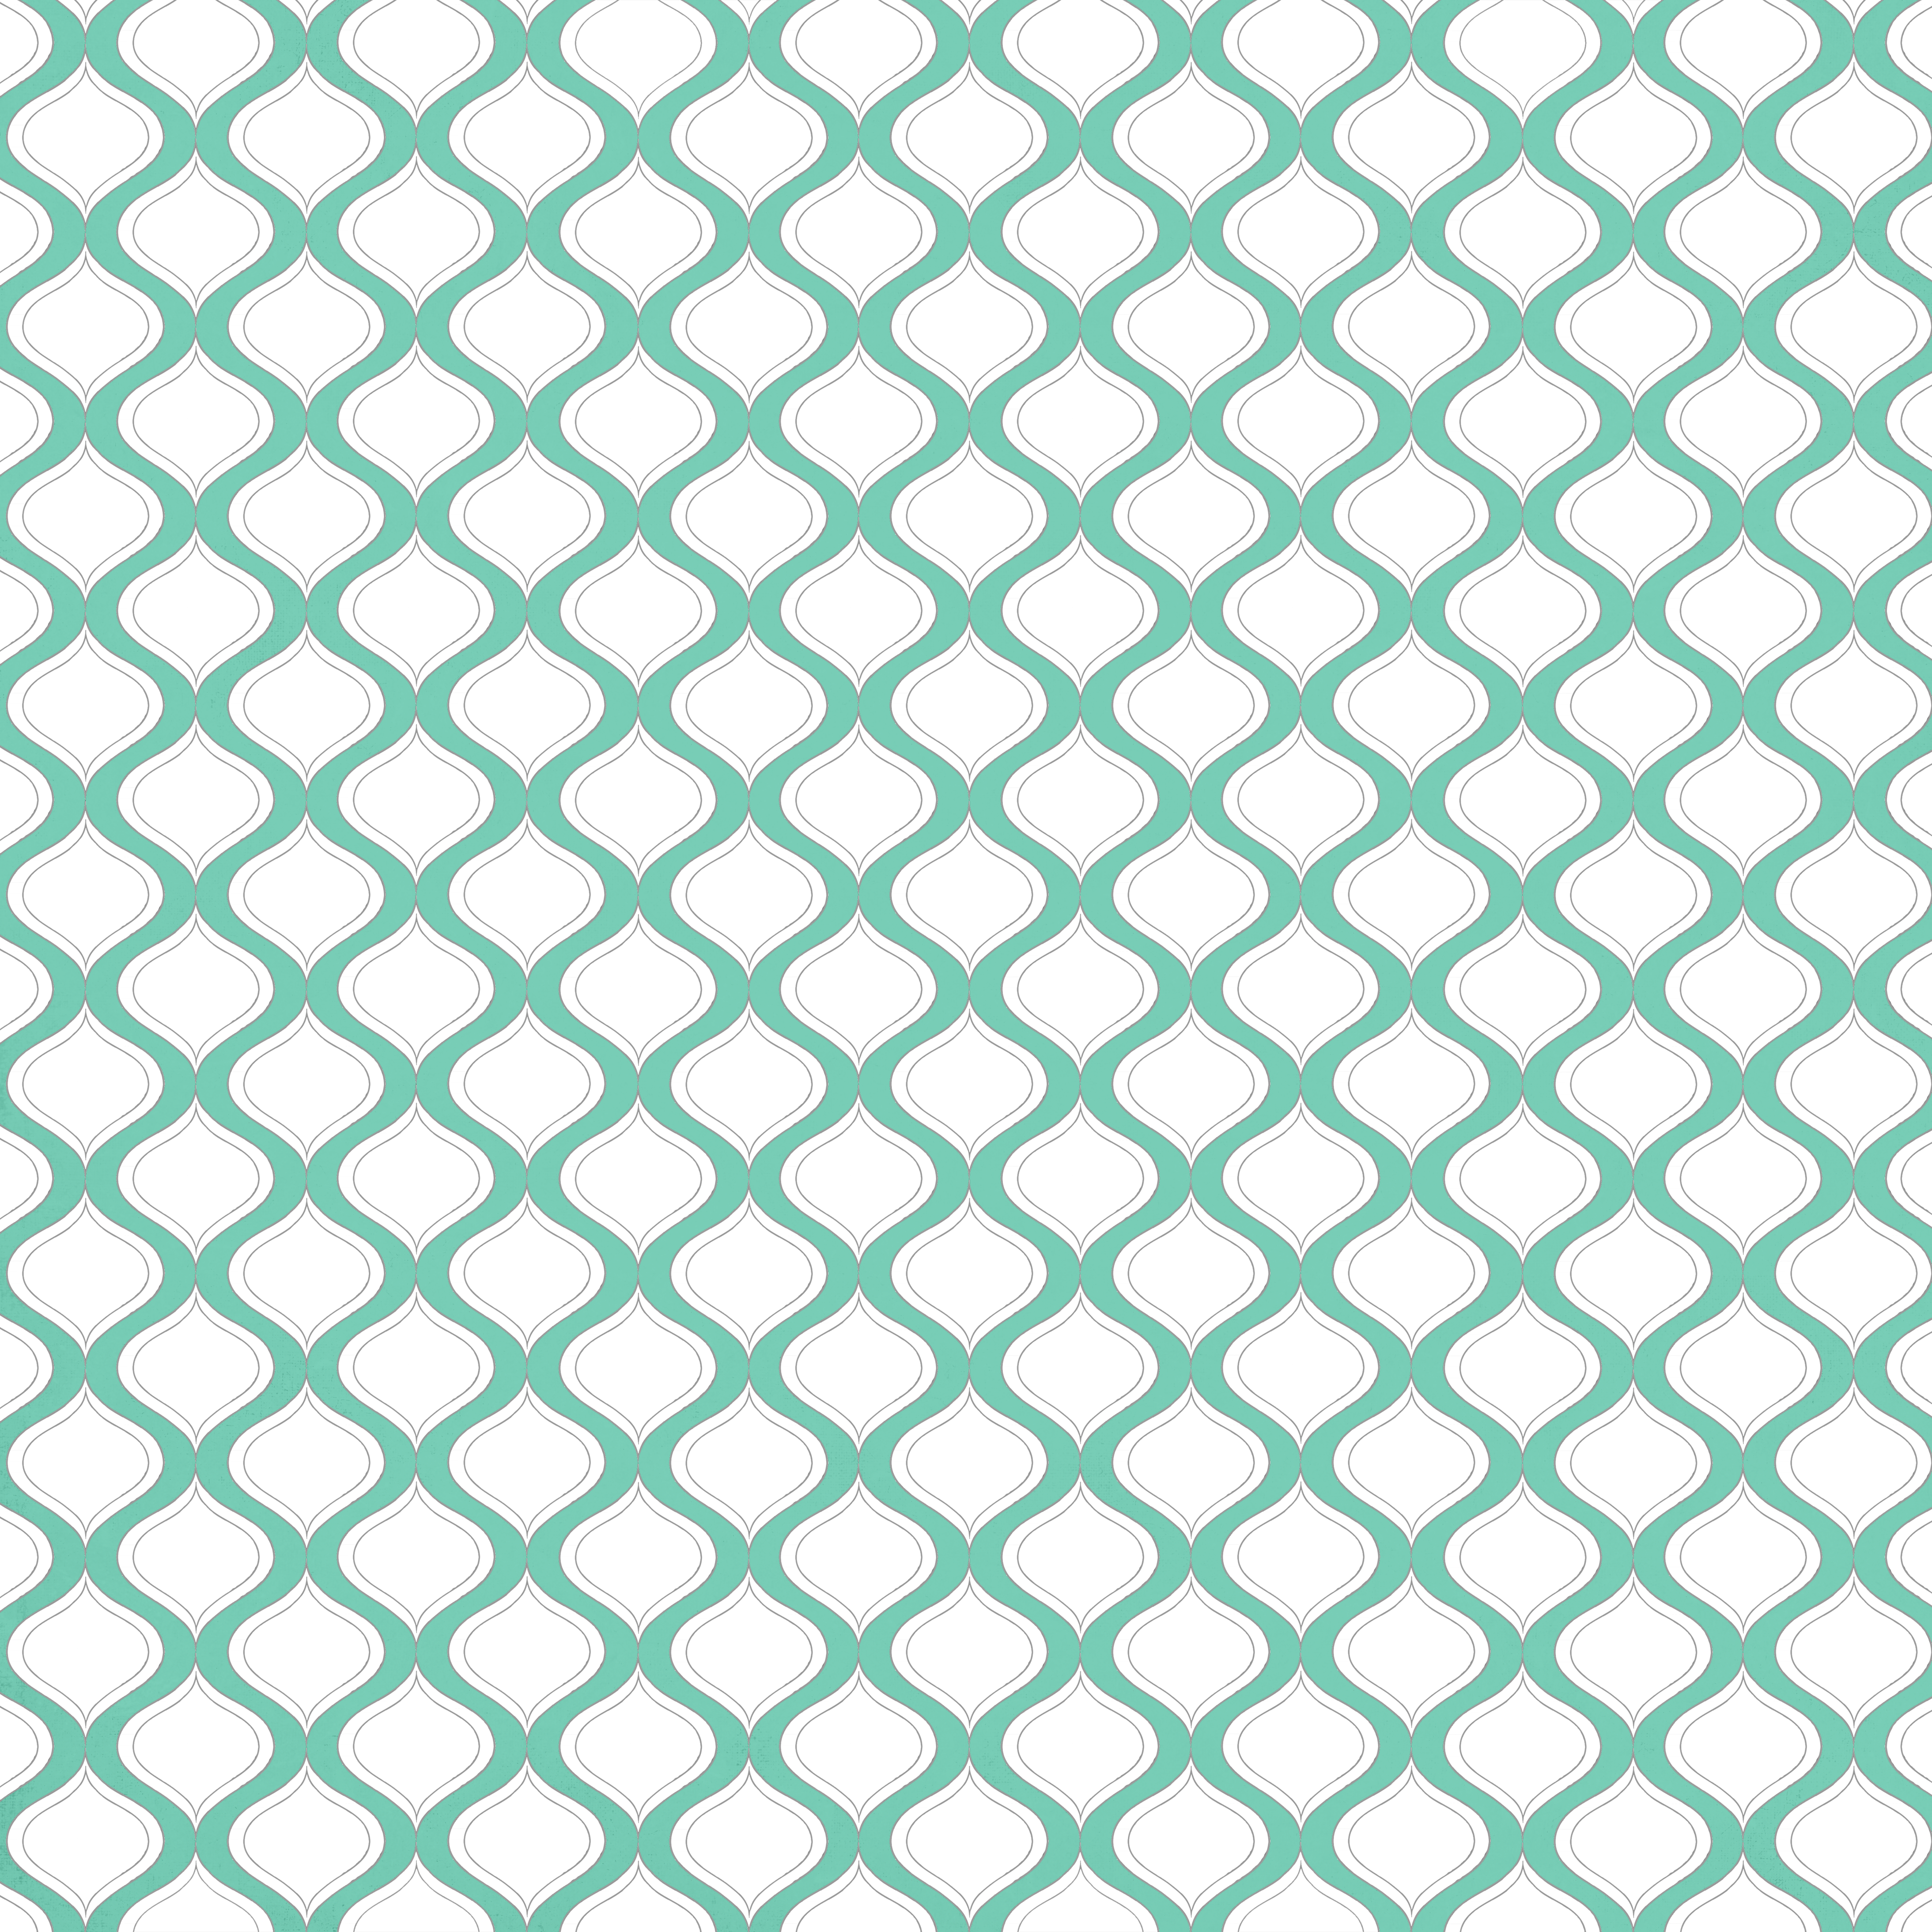 Free Pattern Backgrounds Free Background Patterns Graphic